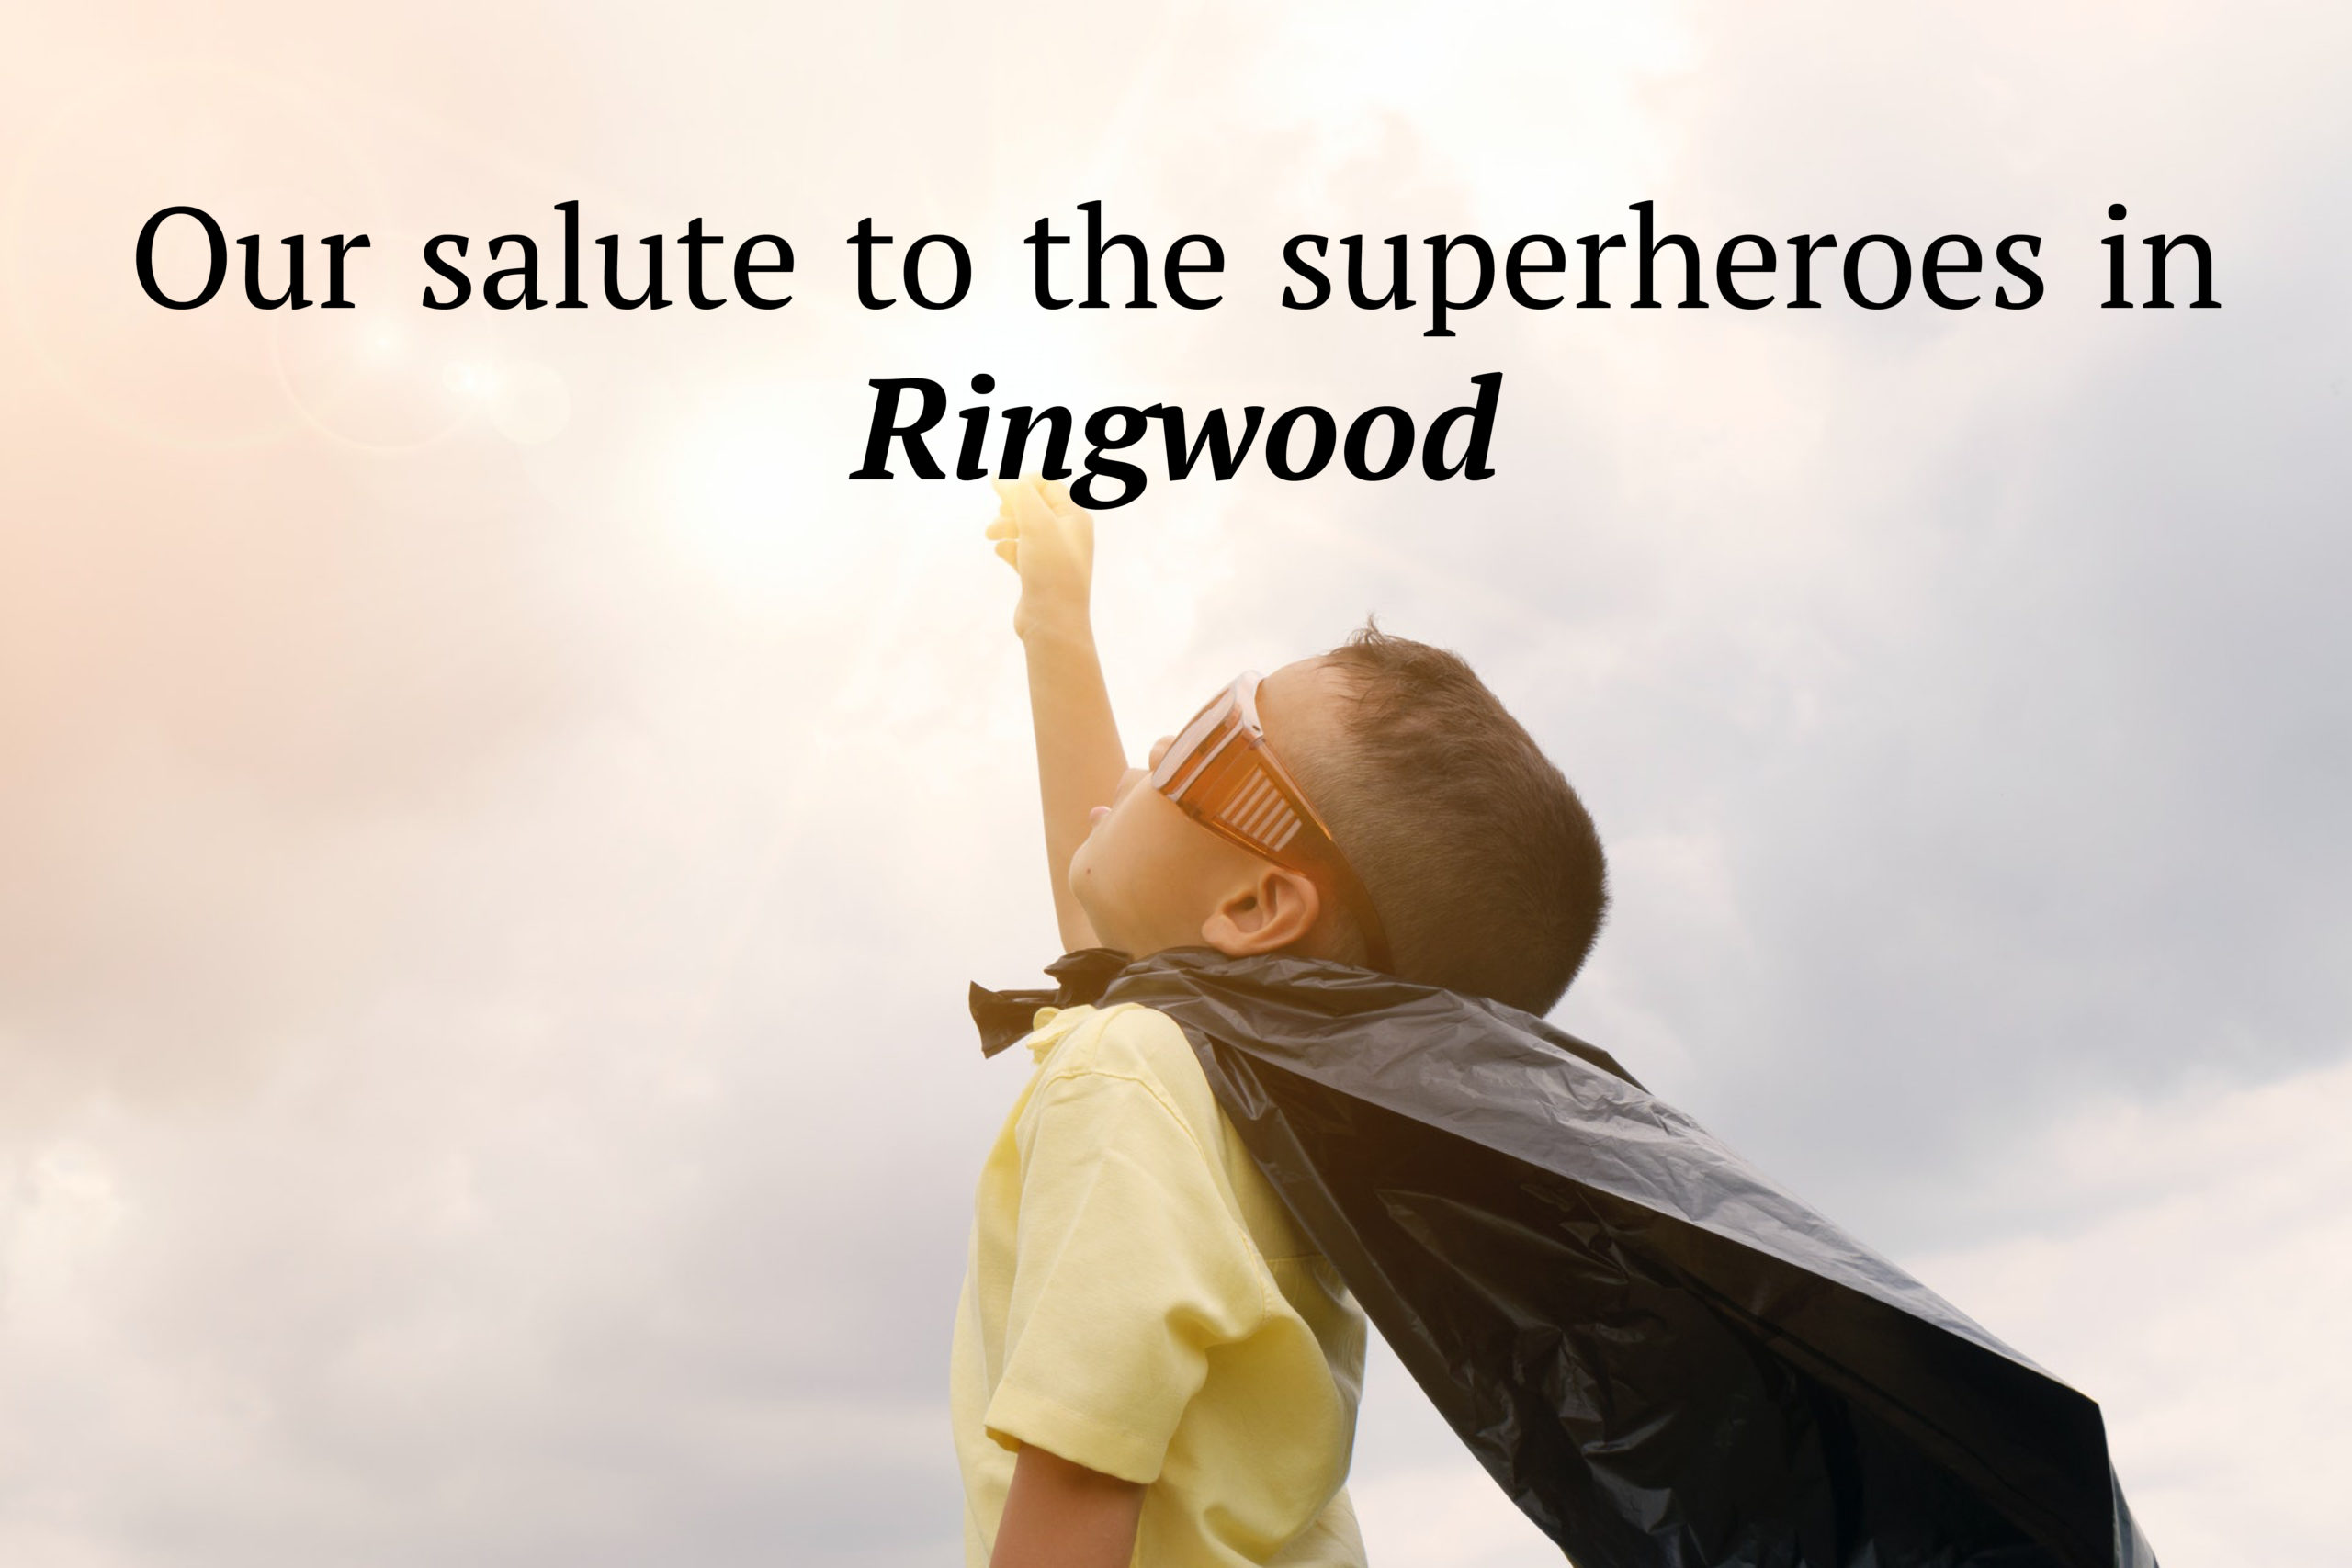 Our salute to the superheroes in Ringwood